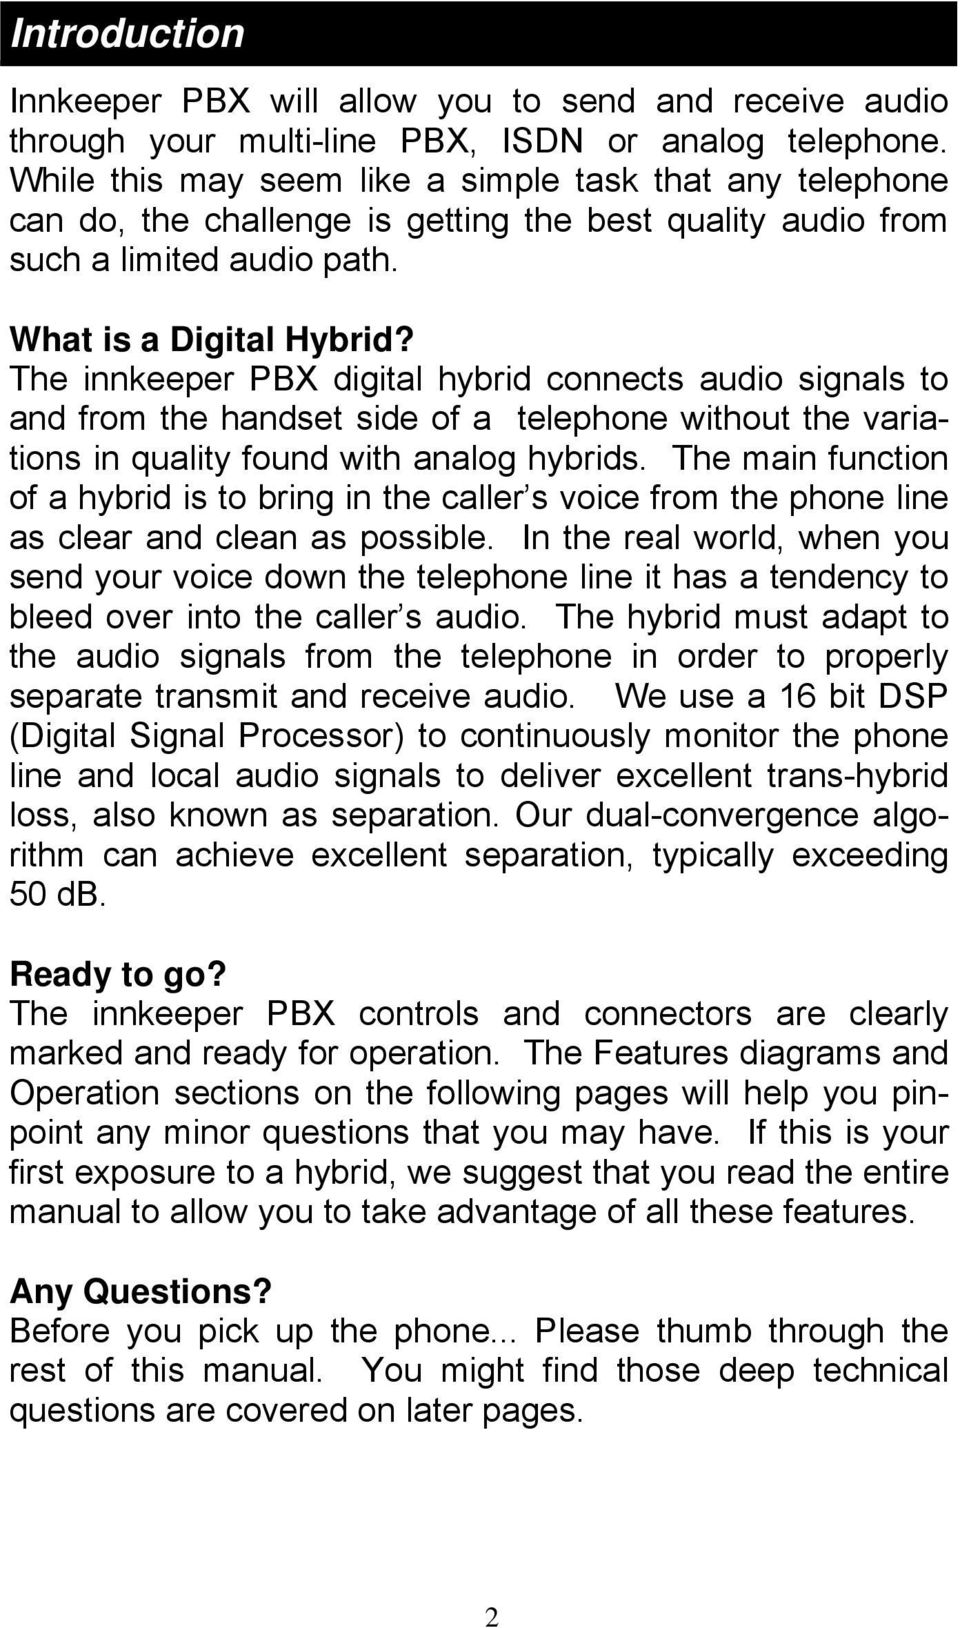 The innkeeper PBX digital hybrid connects audio signals to and from the handset side of a telephone without the variations in quality found with analog hybrids.